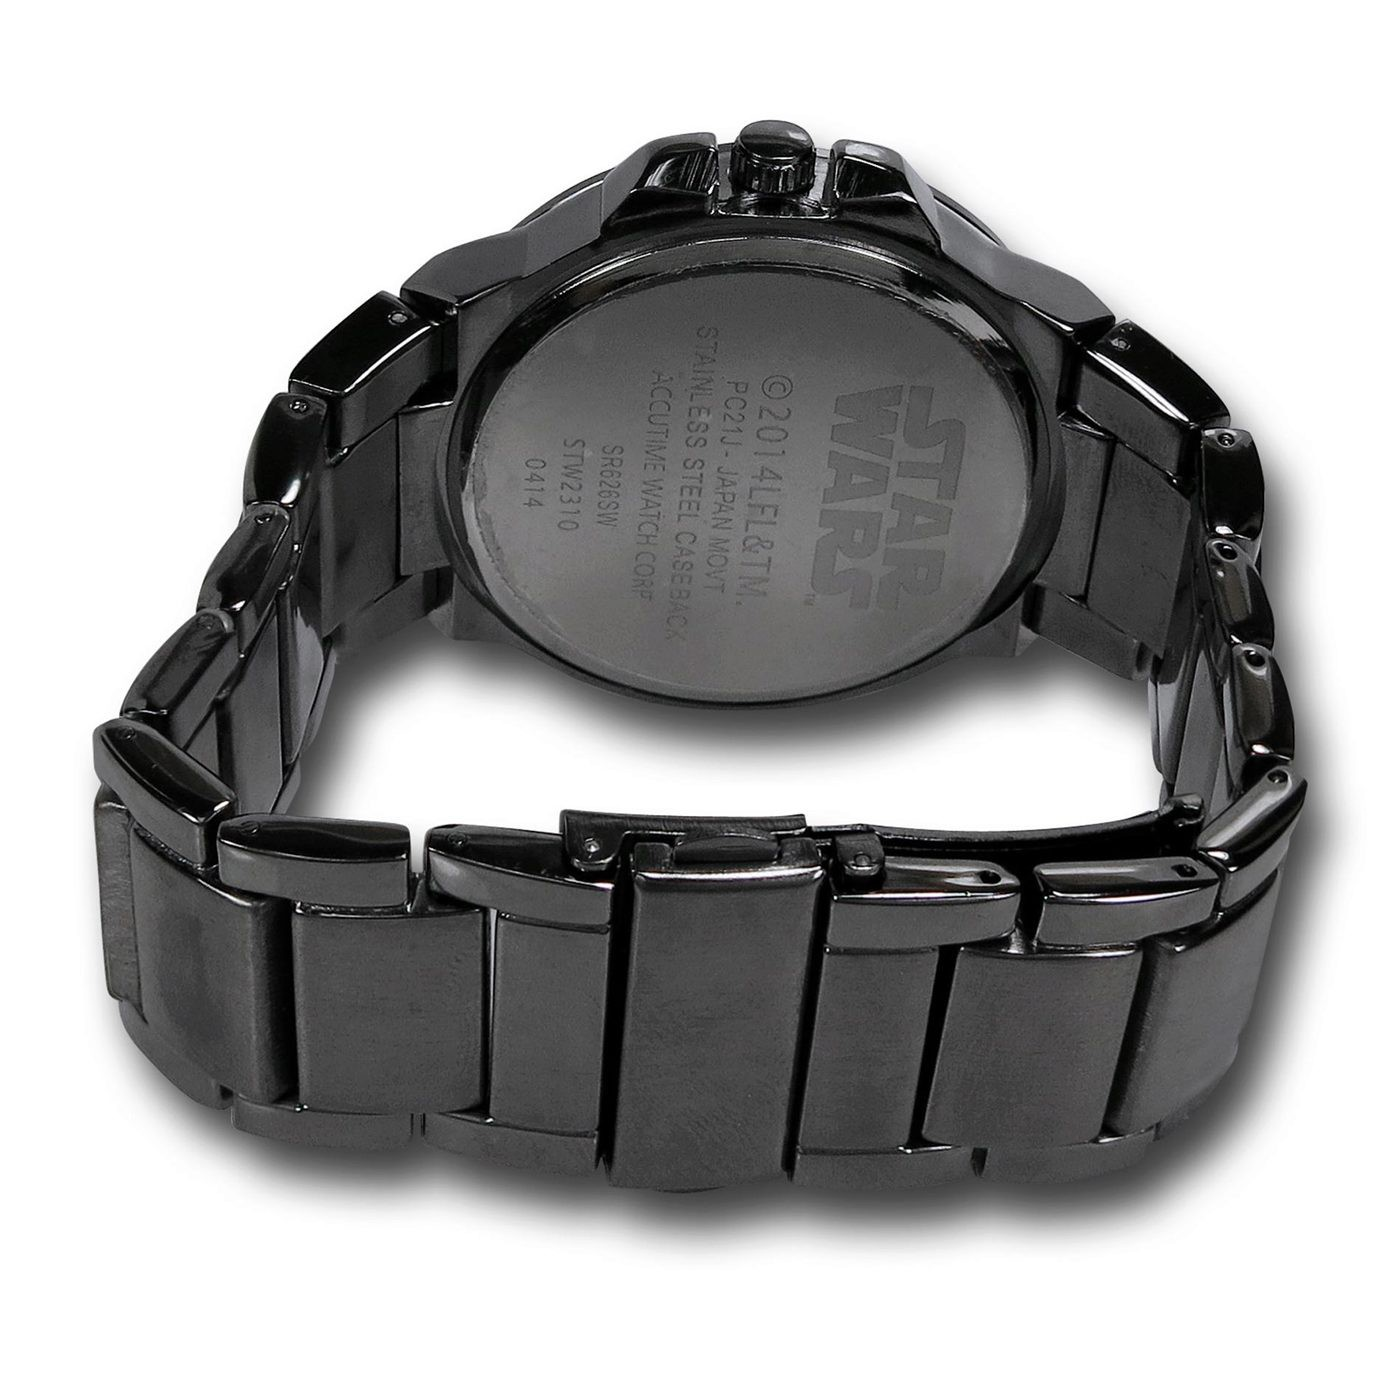 Star Wars Death Star Black Watch with Metal Band